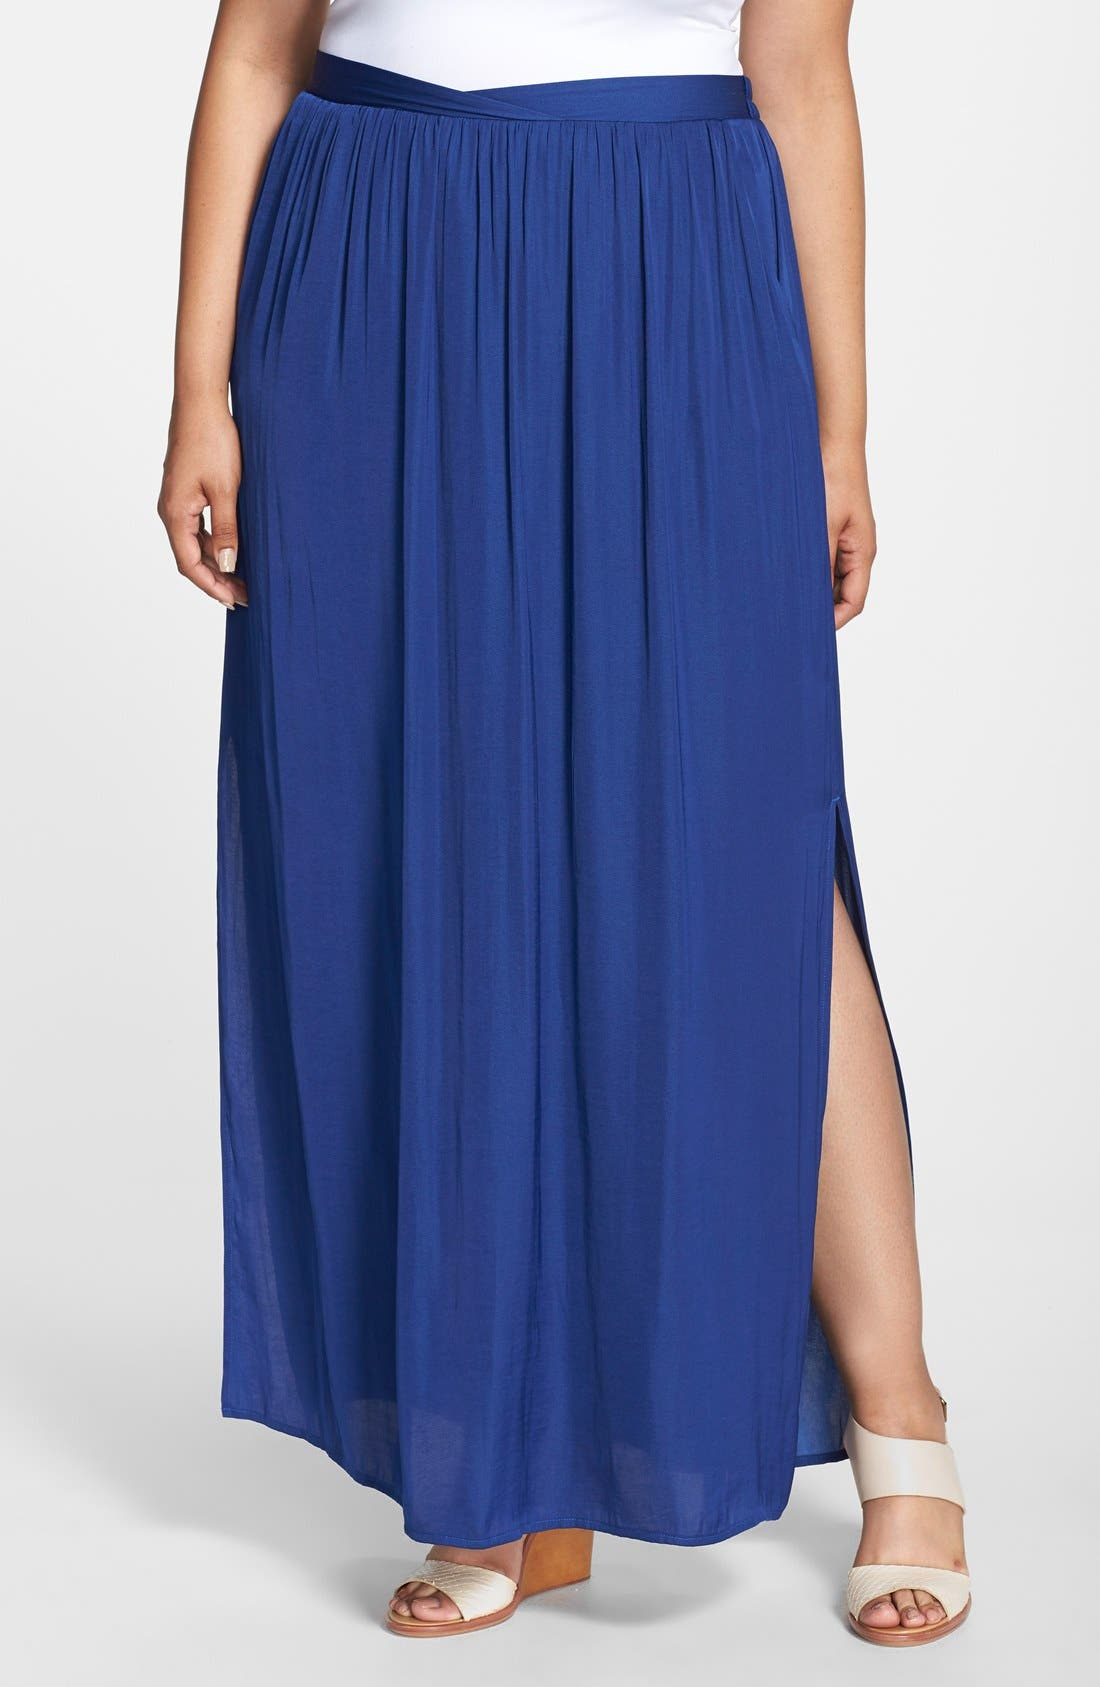 'Tarot' Side Slit Maxi Skirt,                             Main thumbnail 1, color,                             419